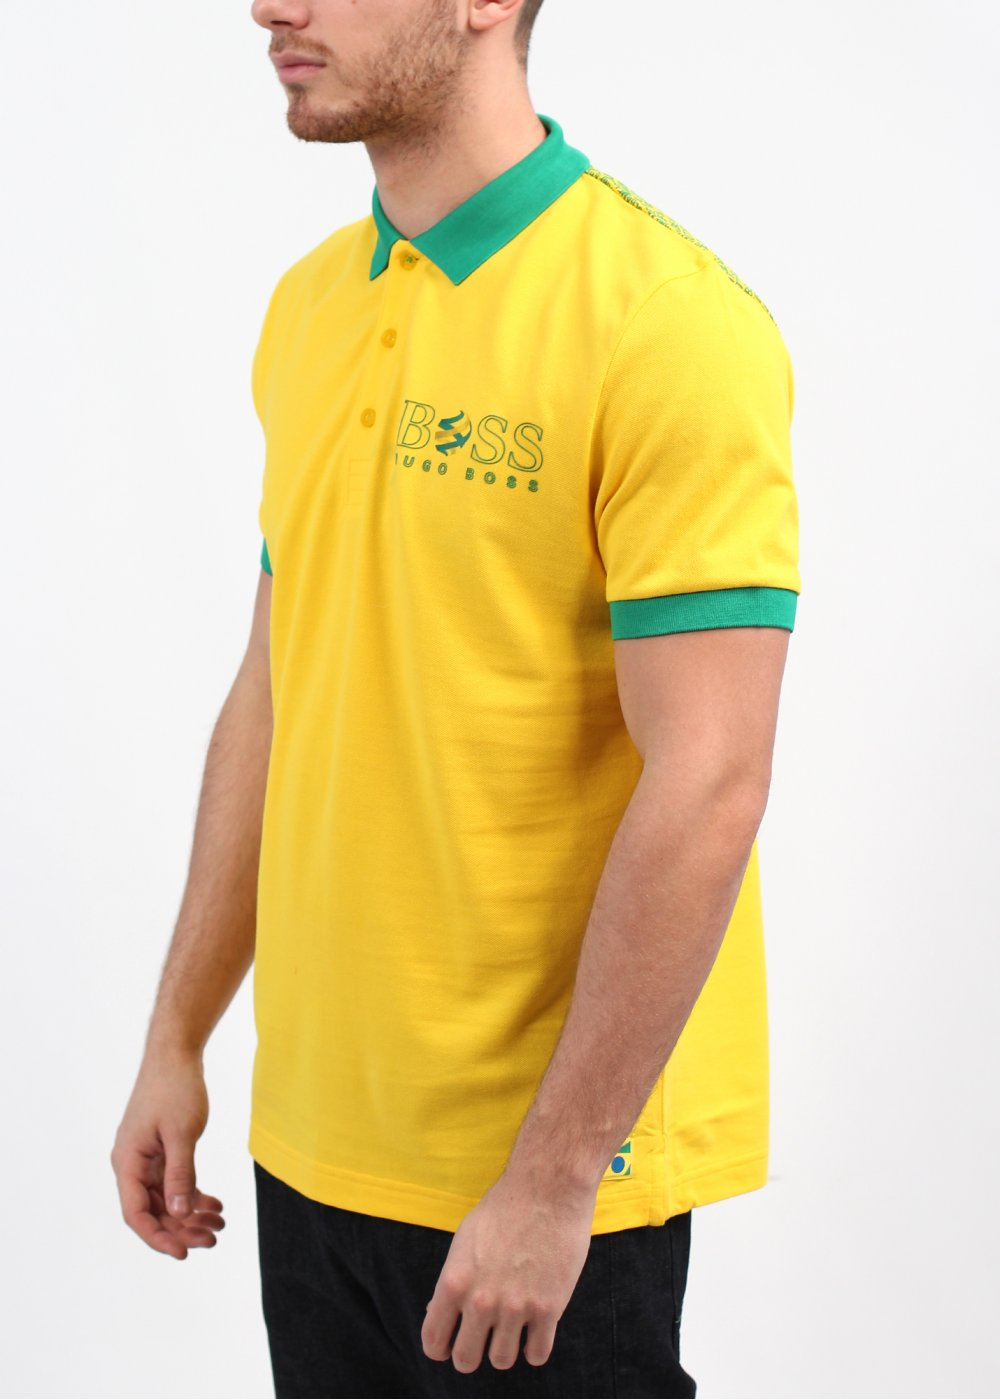 Hugo boss green brazil wc paddy polo shirt yellow green for Hugo boss green polo shirt sale